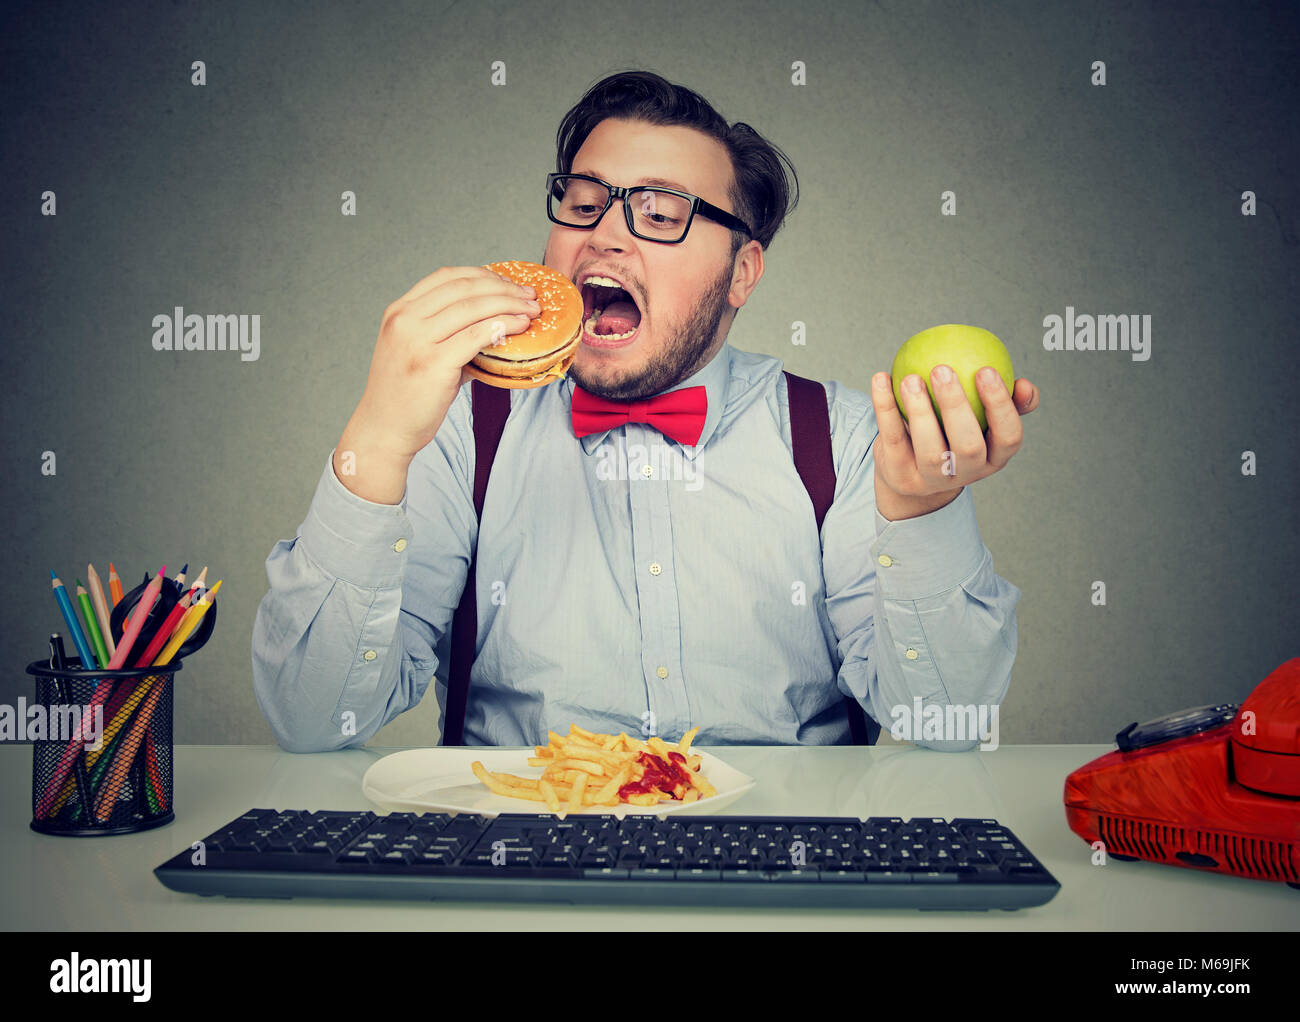 Young man eating hamburger accompagné de frites au lieu d'apple ayant un mode de vie sédentaire dans Photo Stock